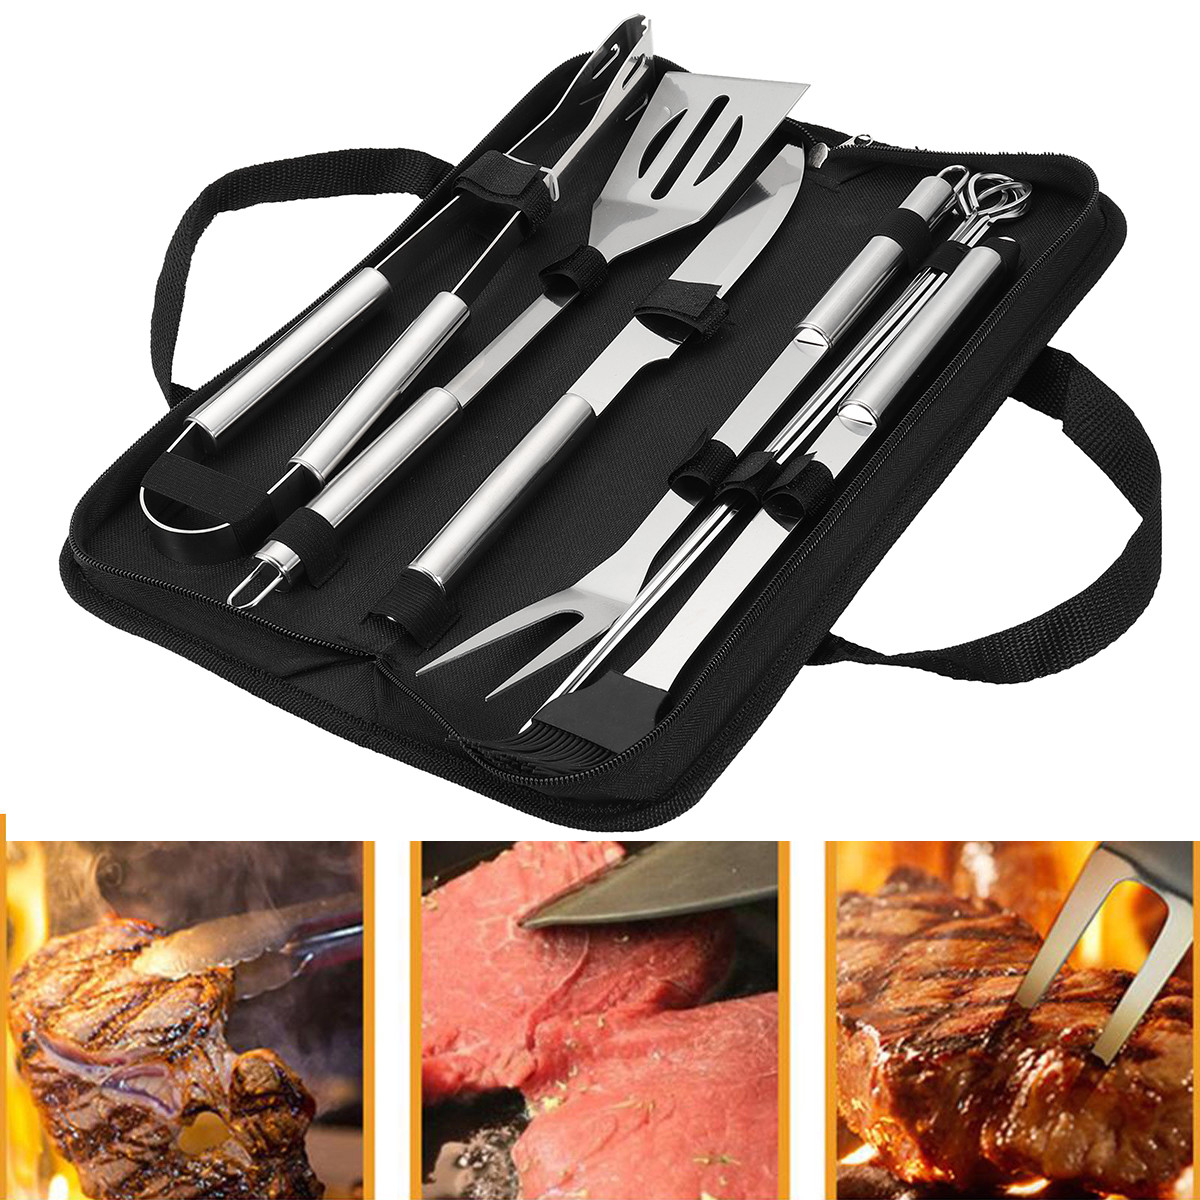 10Pcs Picnic BBQ Barbecue Tool Set Stainless Steel Grill Tableware Accessories